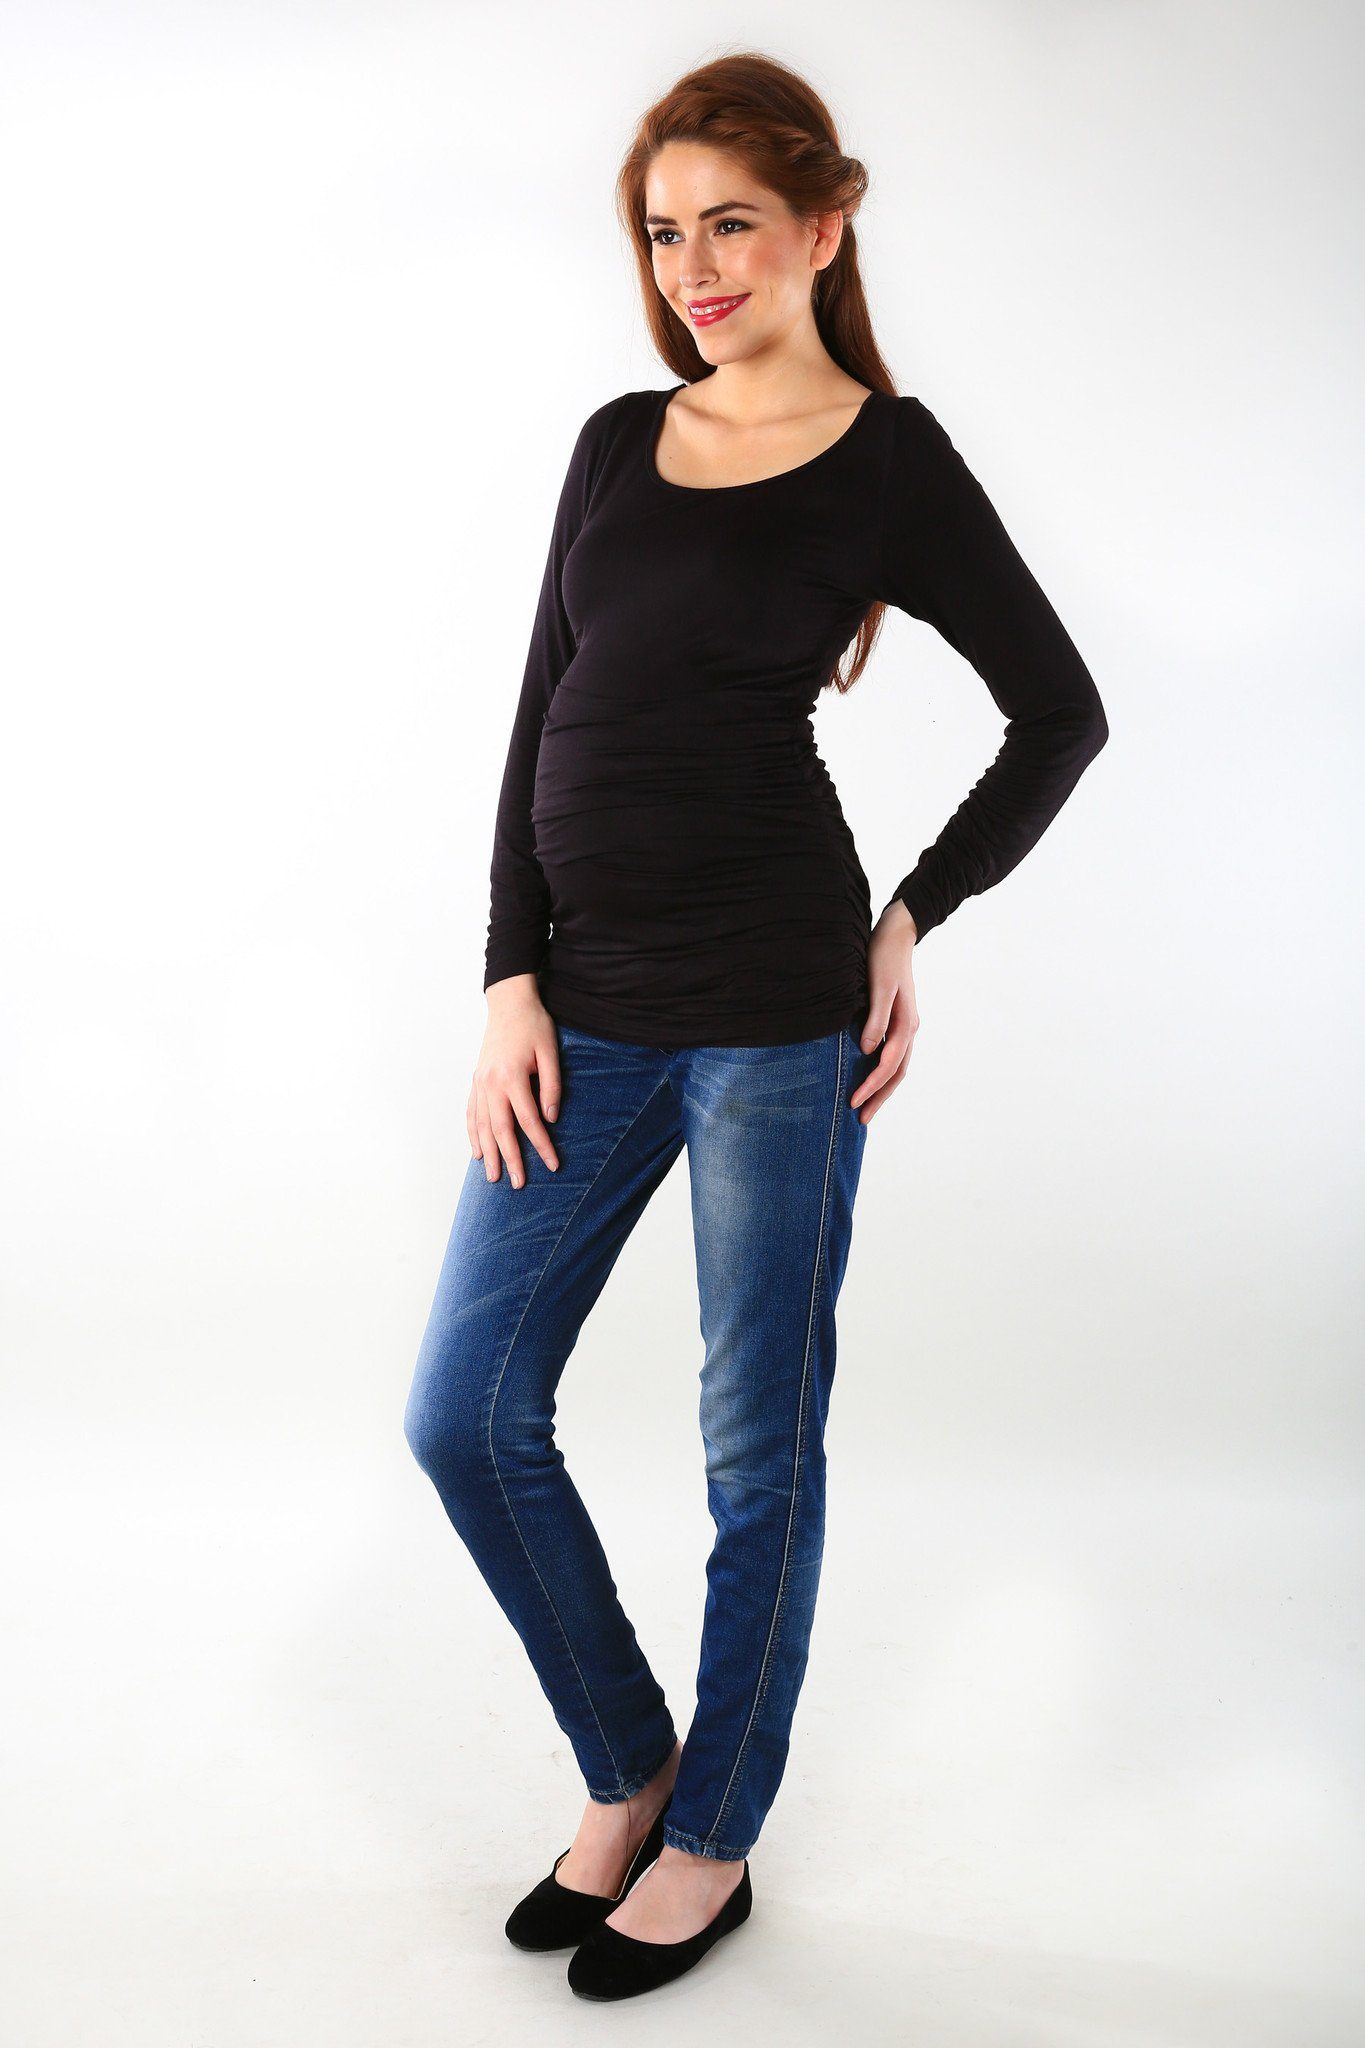 Long Sleeve Gathered Classic Black Maternity Top - MOMZJOY.COM - 3